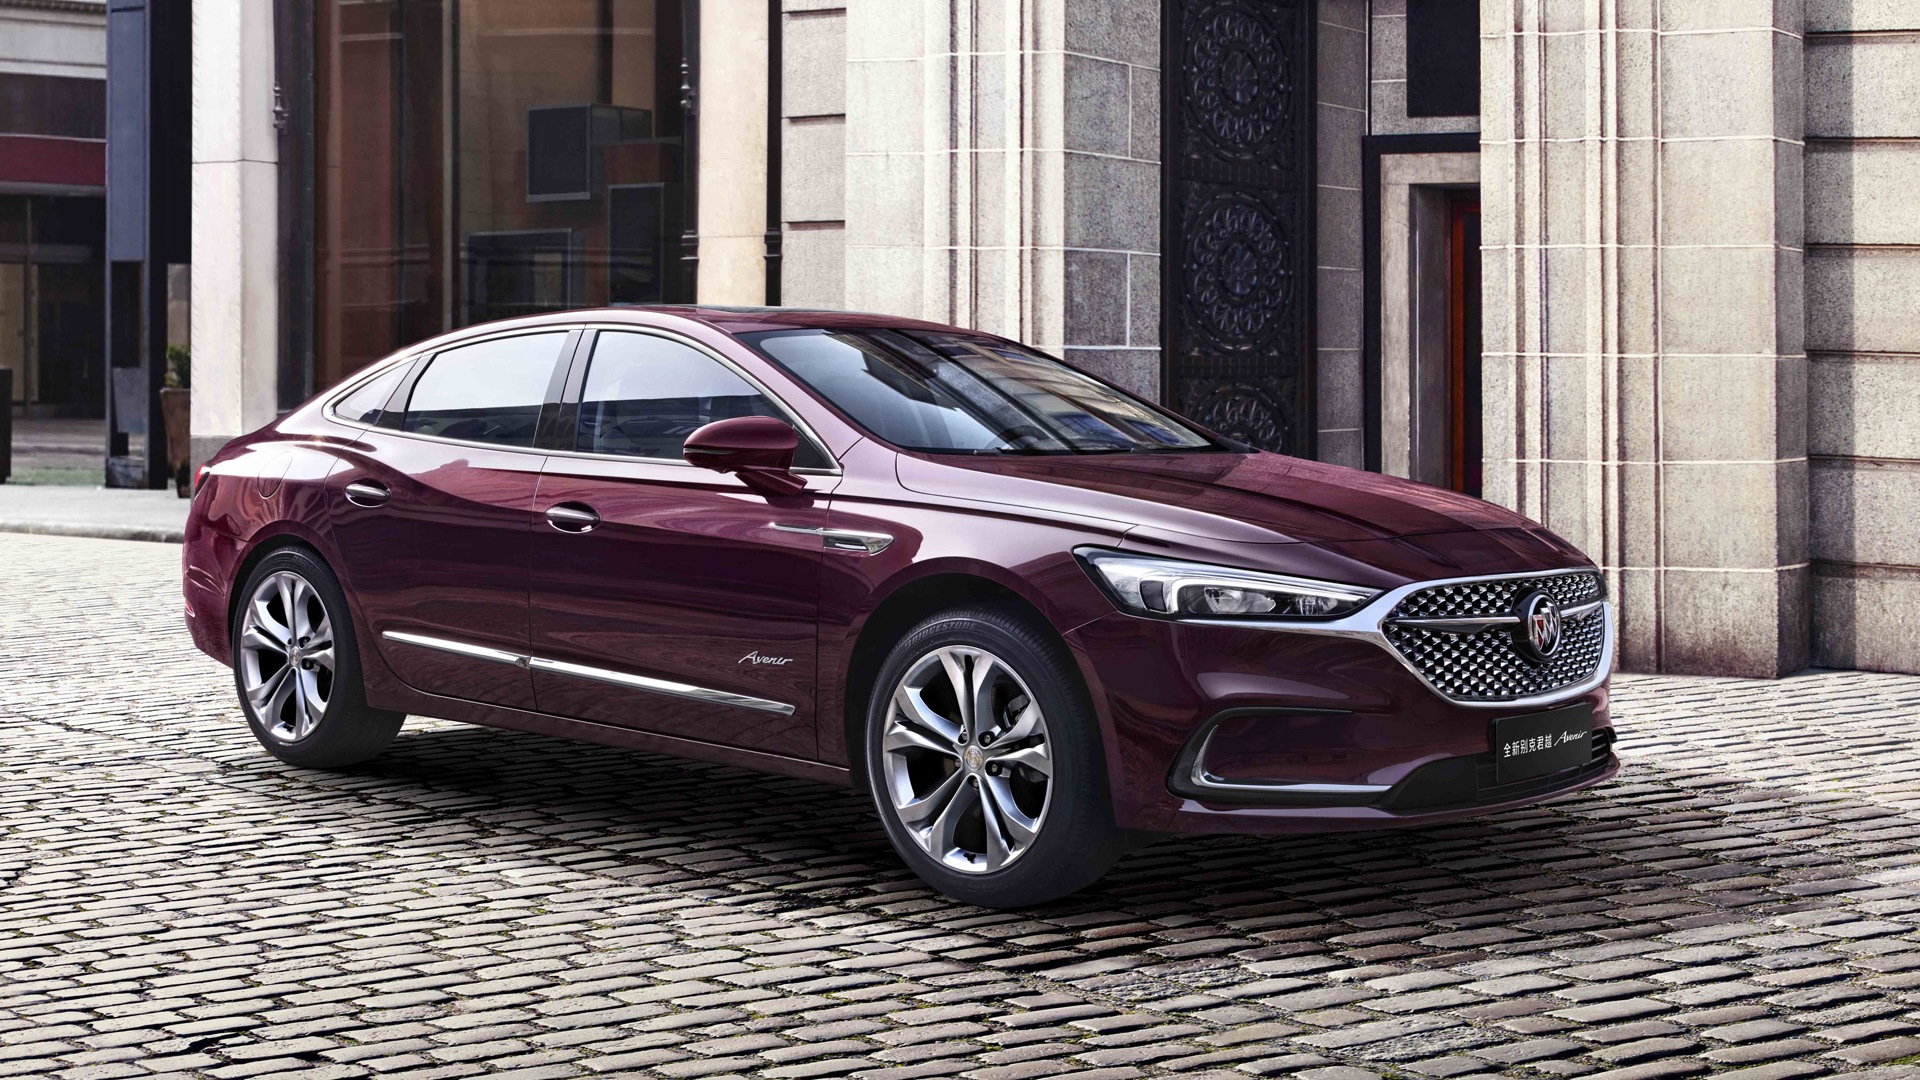 2020 Buick Lacrosse Made Handsome Just As It's Dropped In Us 2021 Buick Lucerne Dimensions, Hp, Interior